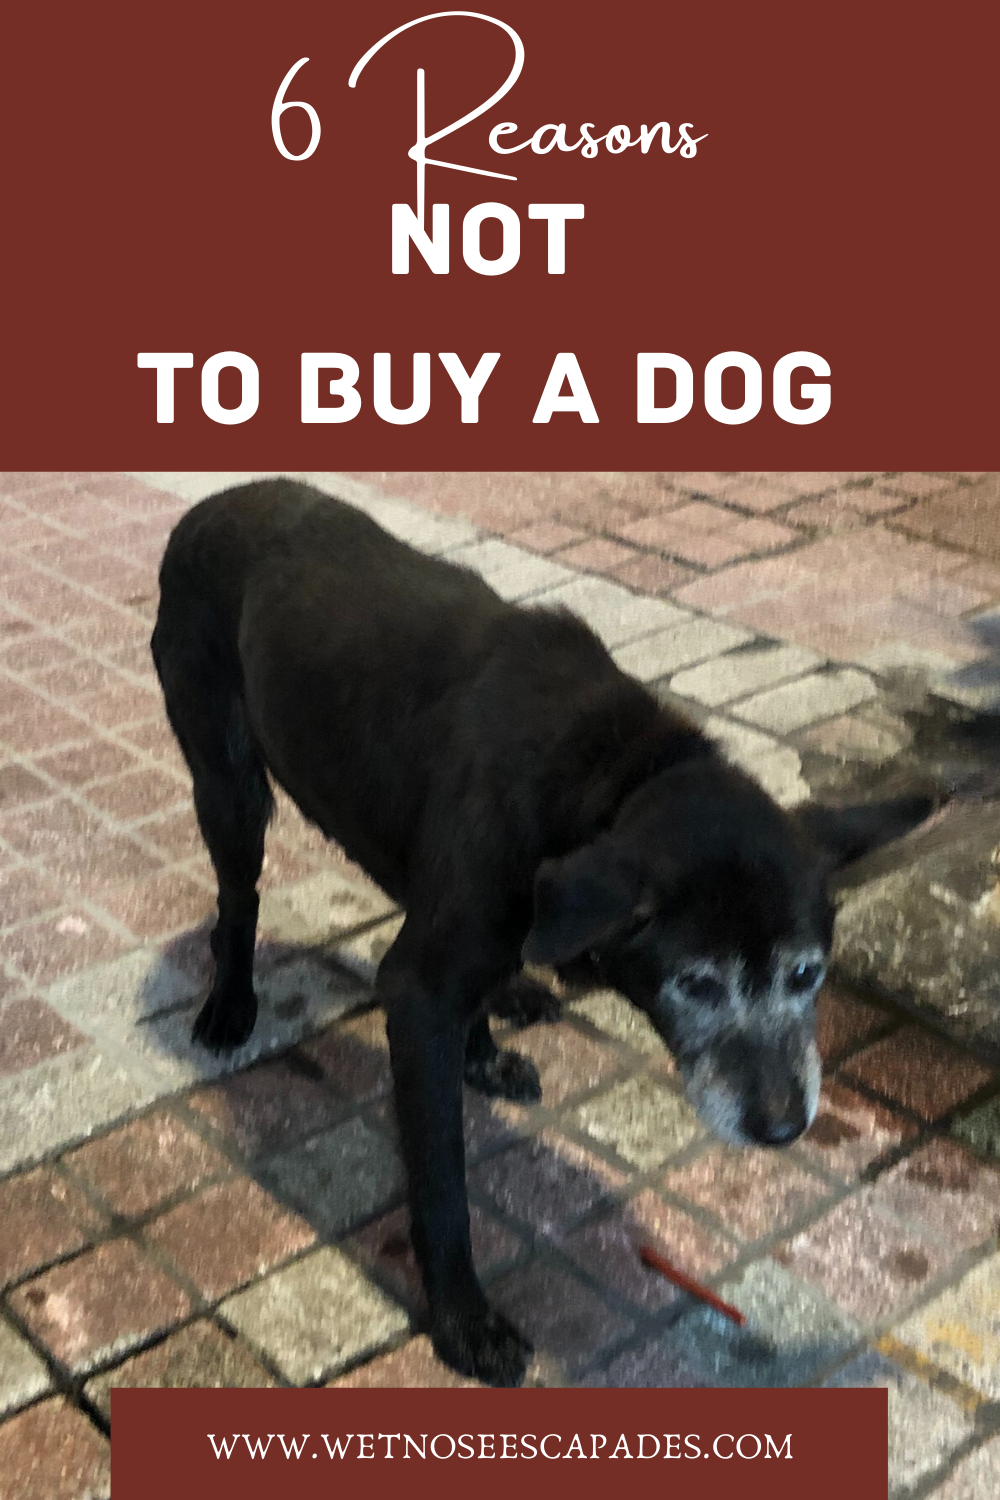 Why You Should Not Buy A Dog From A Breeder In 2020 Buy A Dog Dog Breeds That Dont Shed Dogs